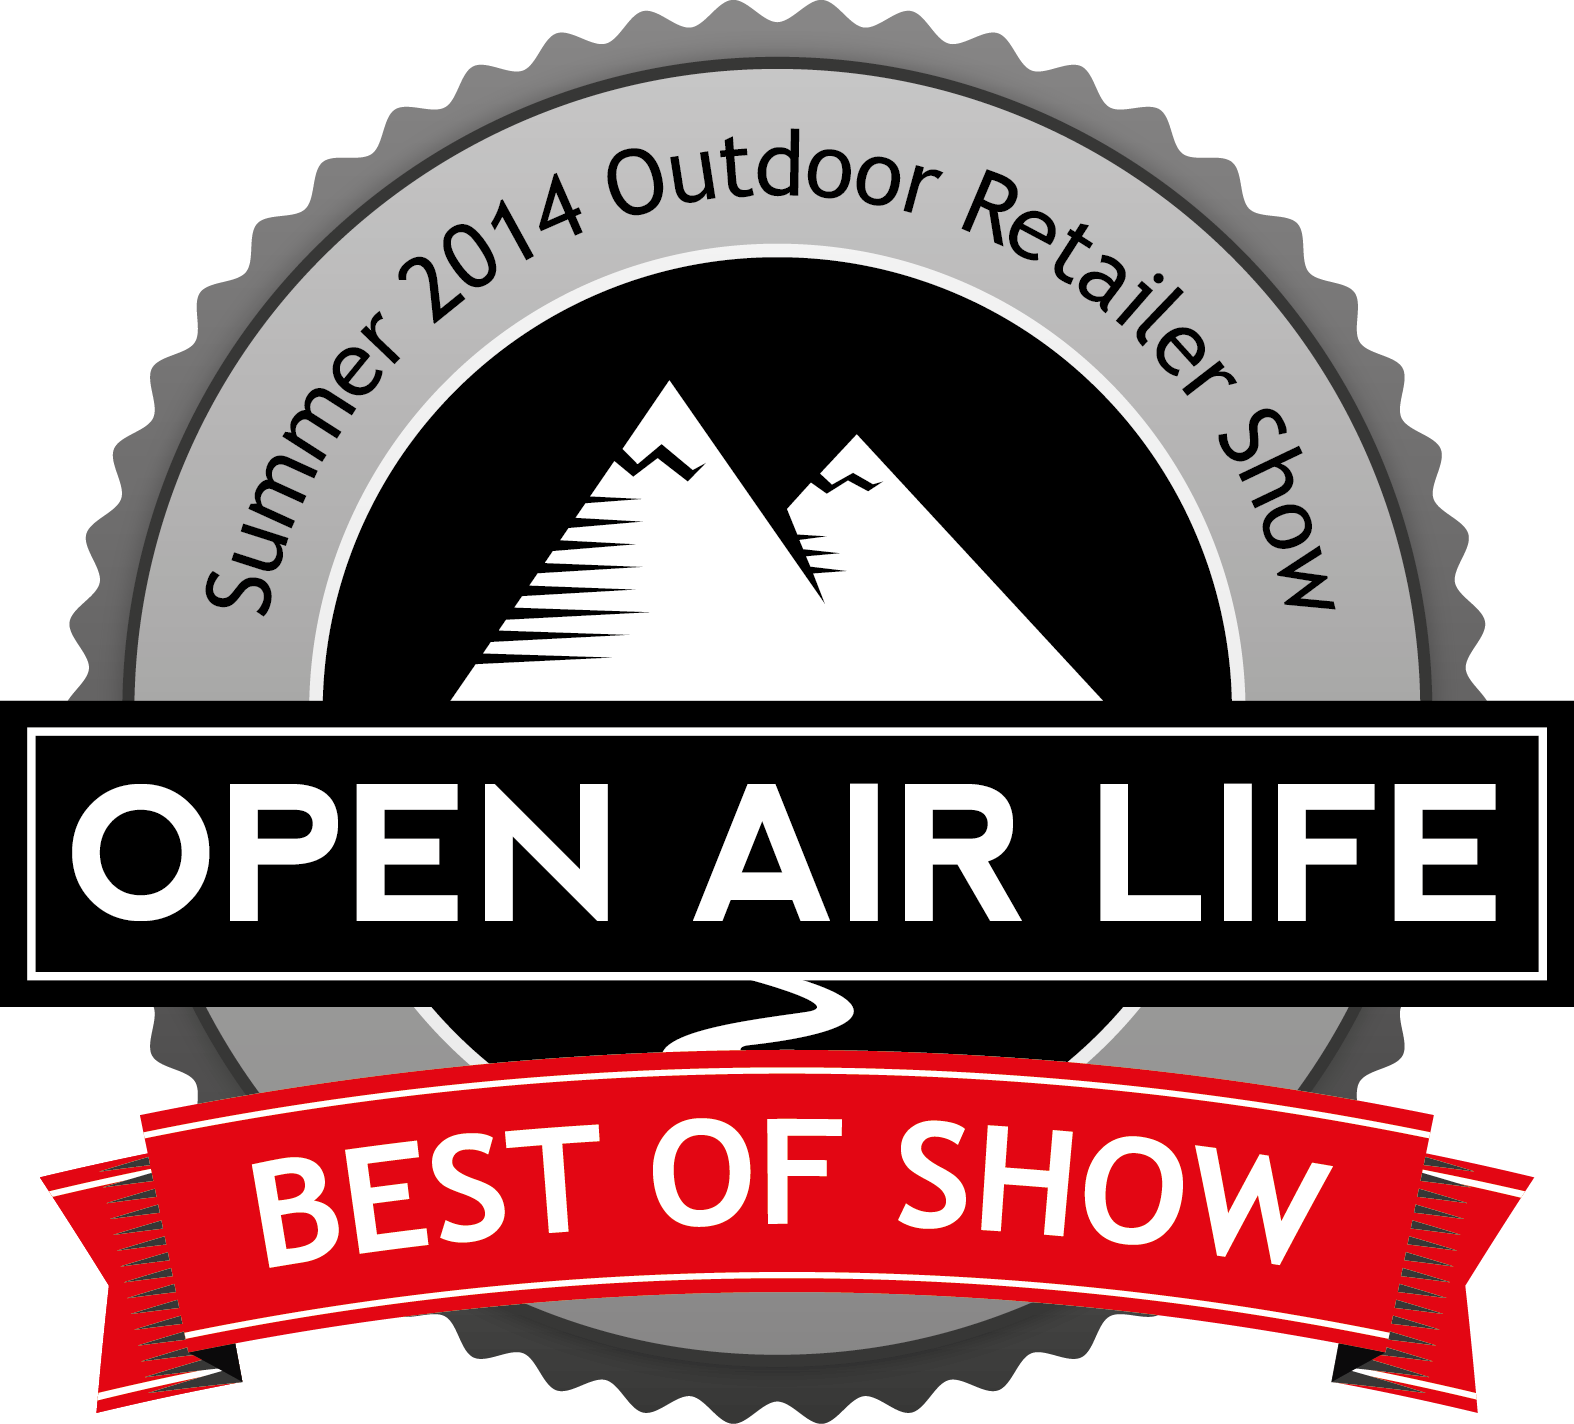 Outdoor Retailer Best of Show